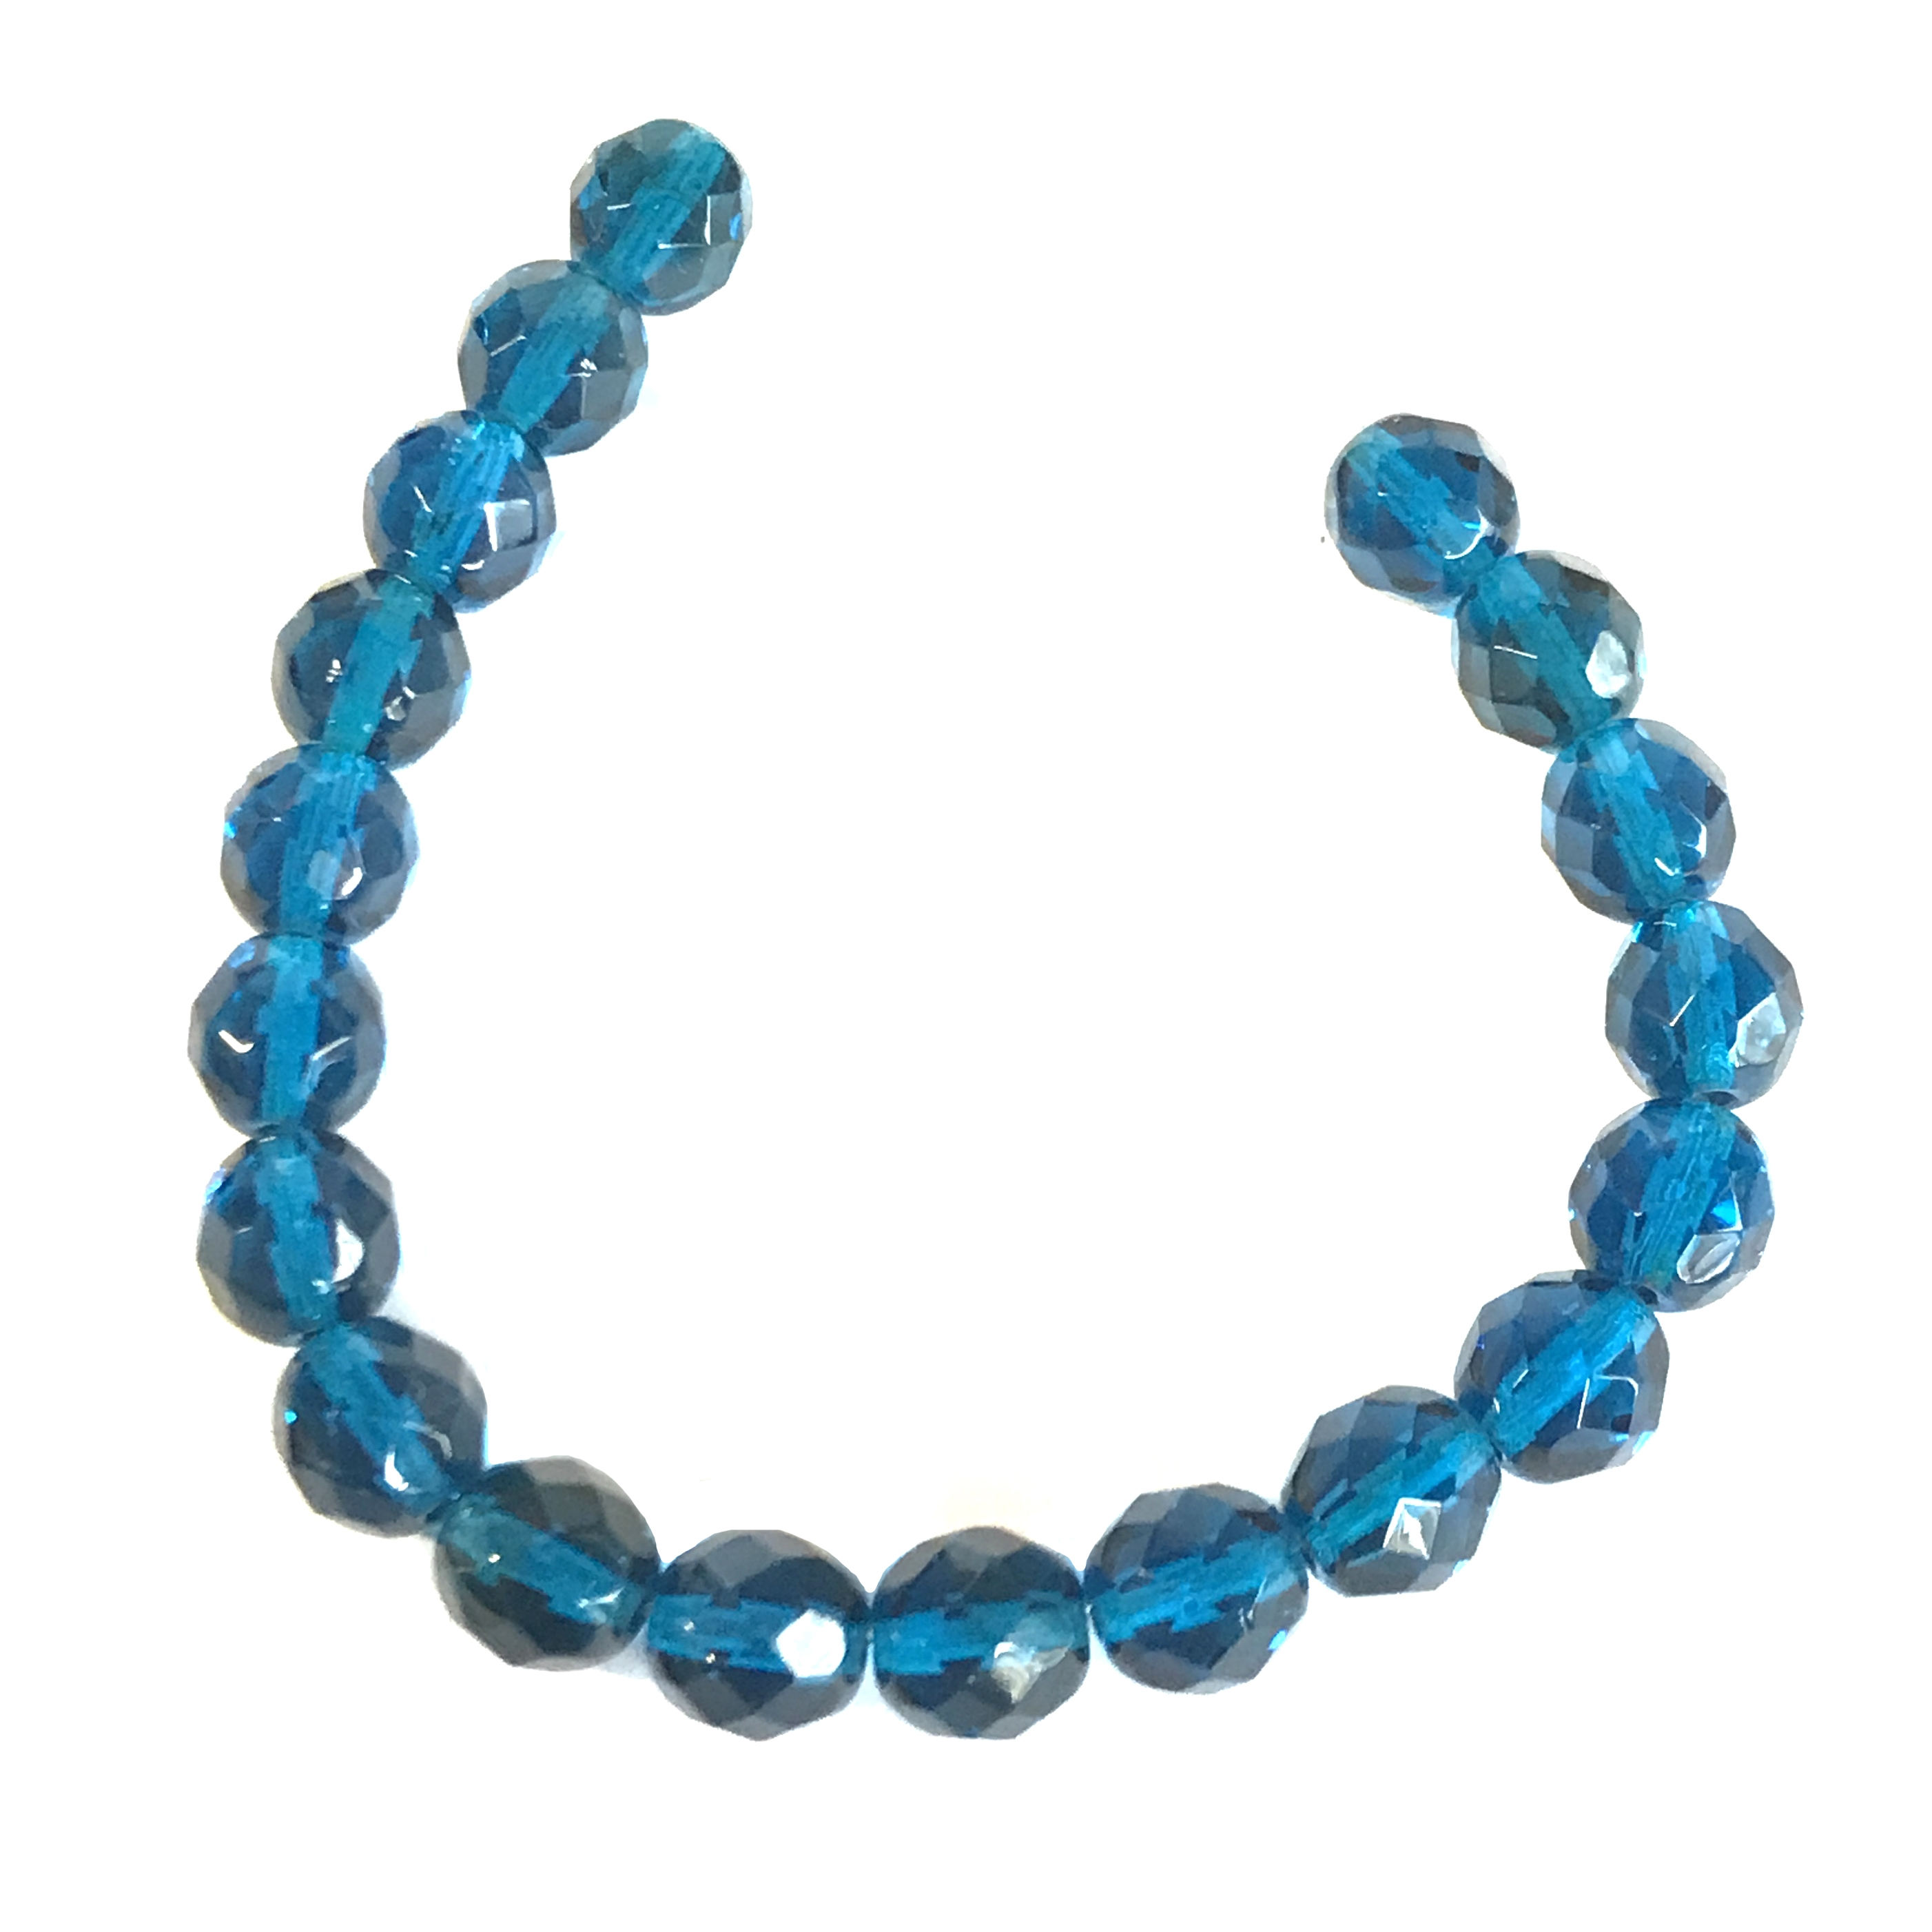 Czech glass beads, capri blue, glass beads, beads, fire polished, blue beads, faceted beads, beading supplies, jewelry making, B'sue Boutiques, temp strung beads, 8mm bead, 8mm, 01527